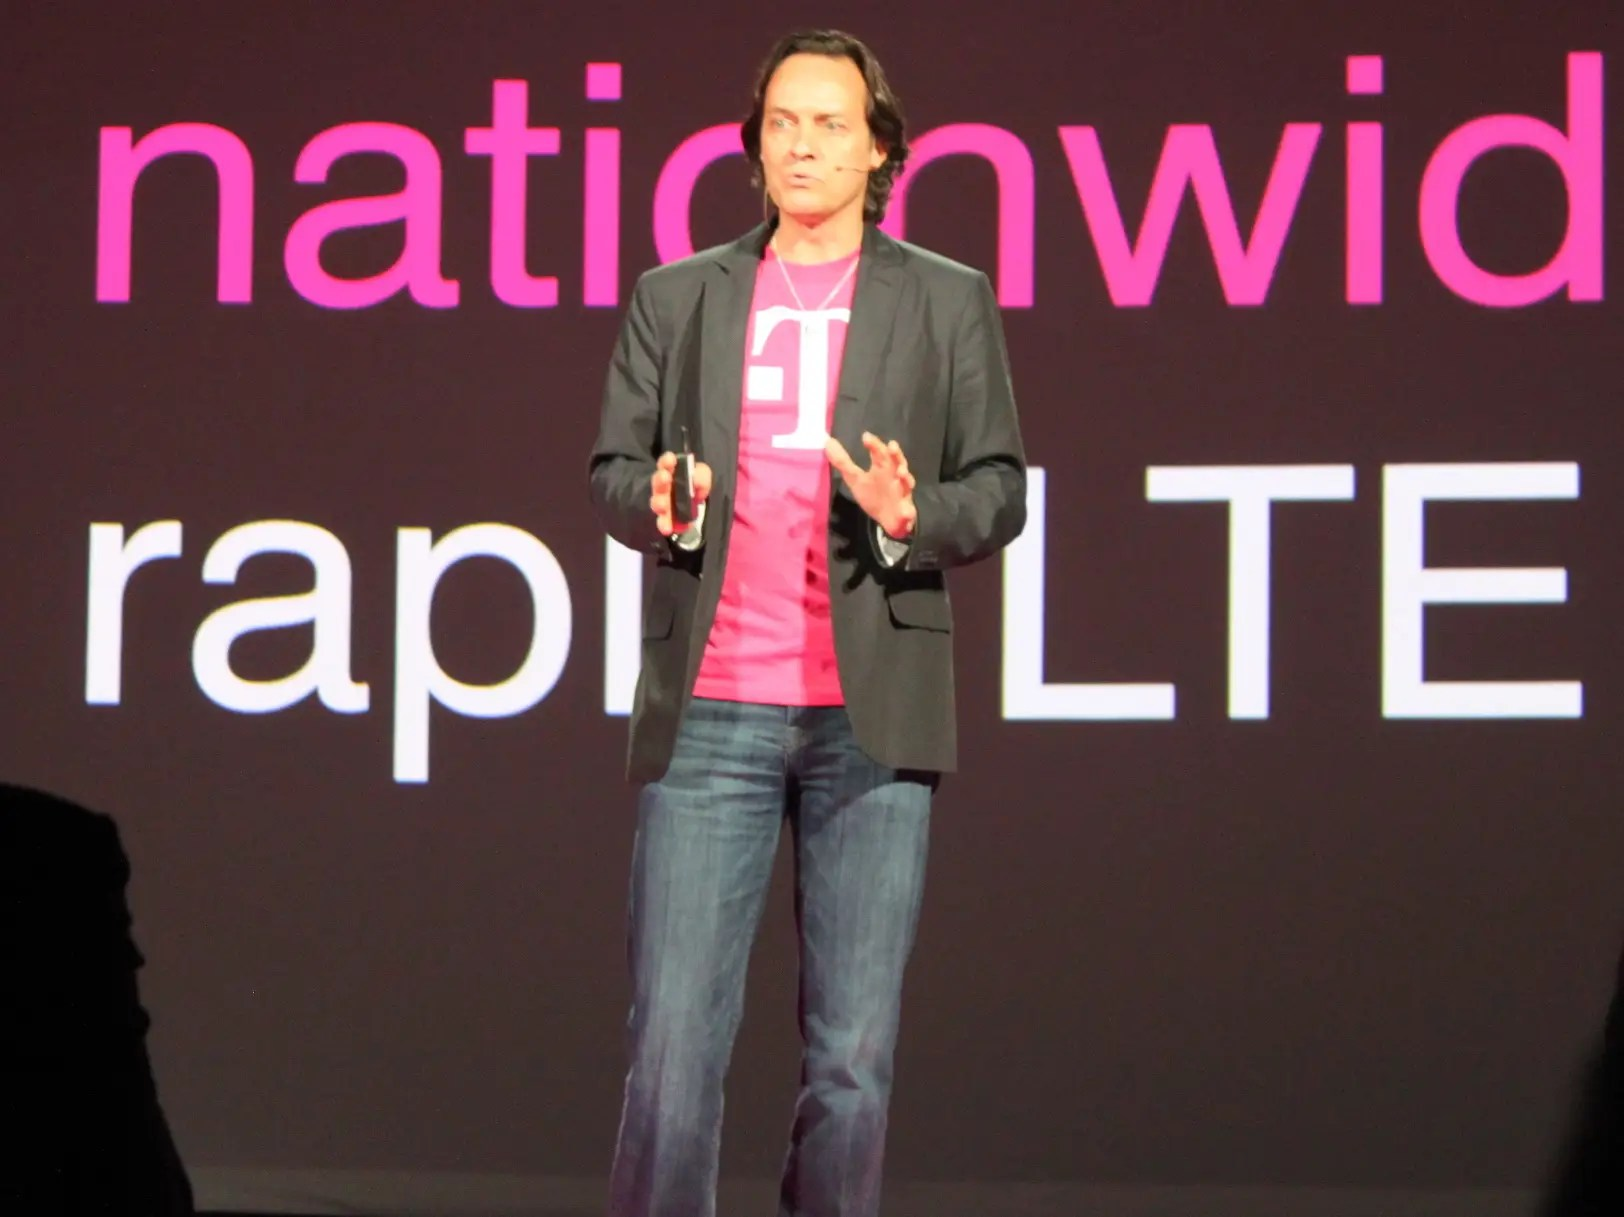 John Legere is the outspoken leader of T-Mobile